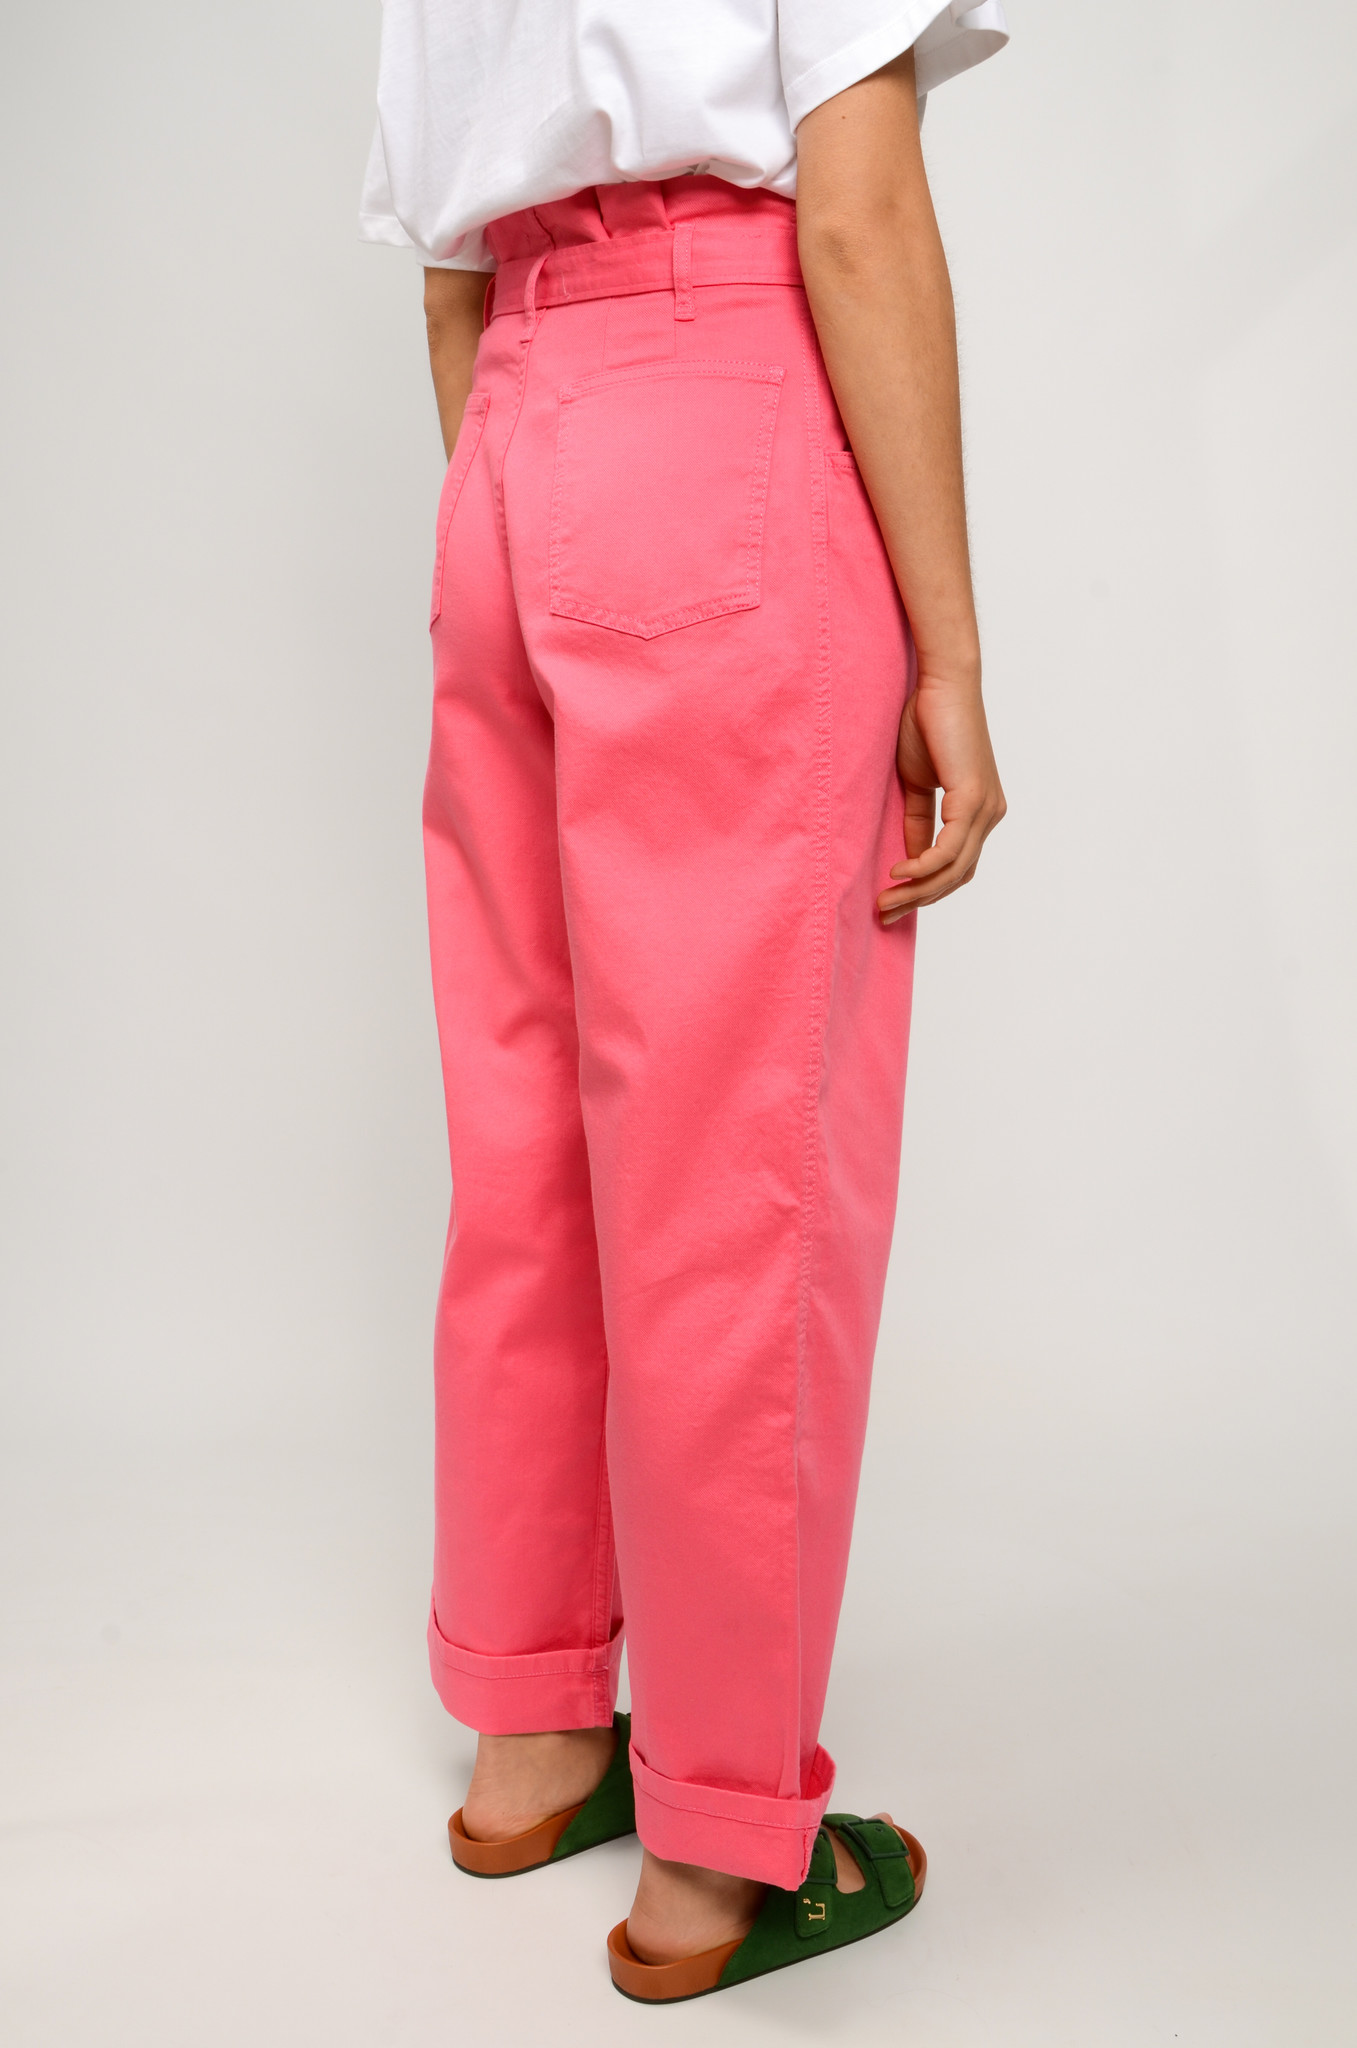 NYSHA TROUSERS IN HONEYSUCKLE PINK-4